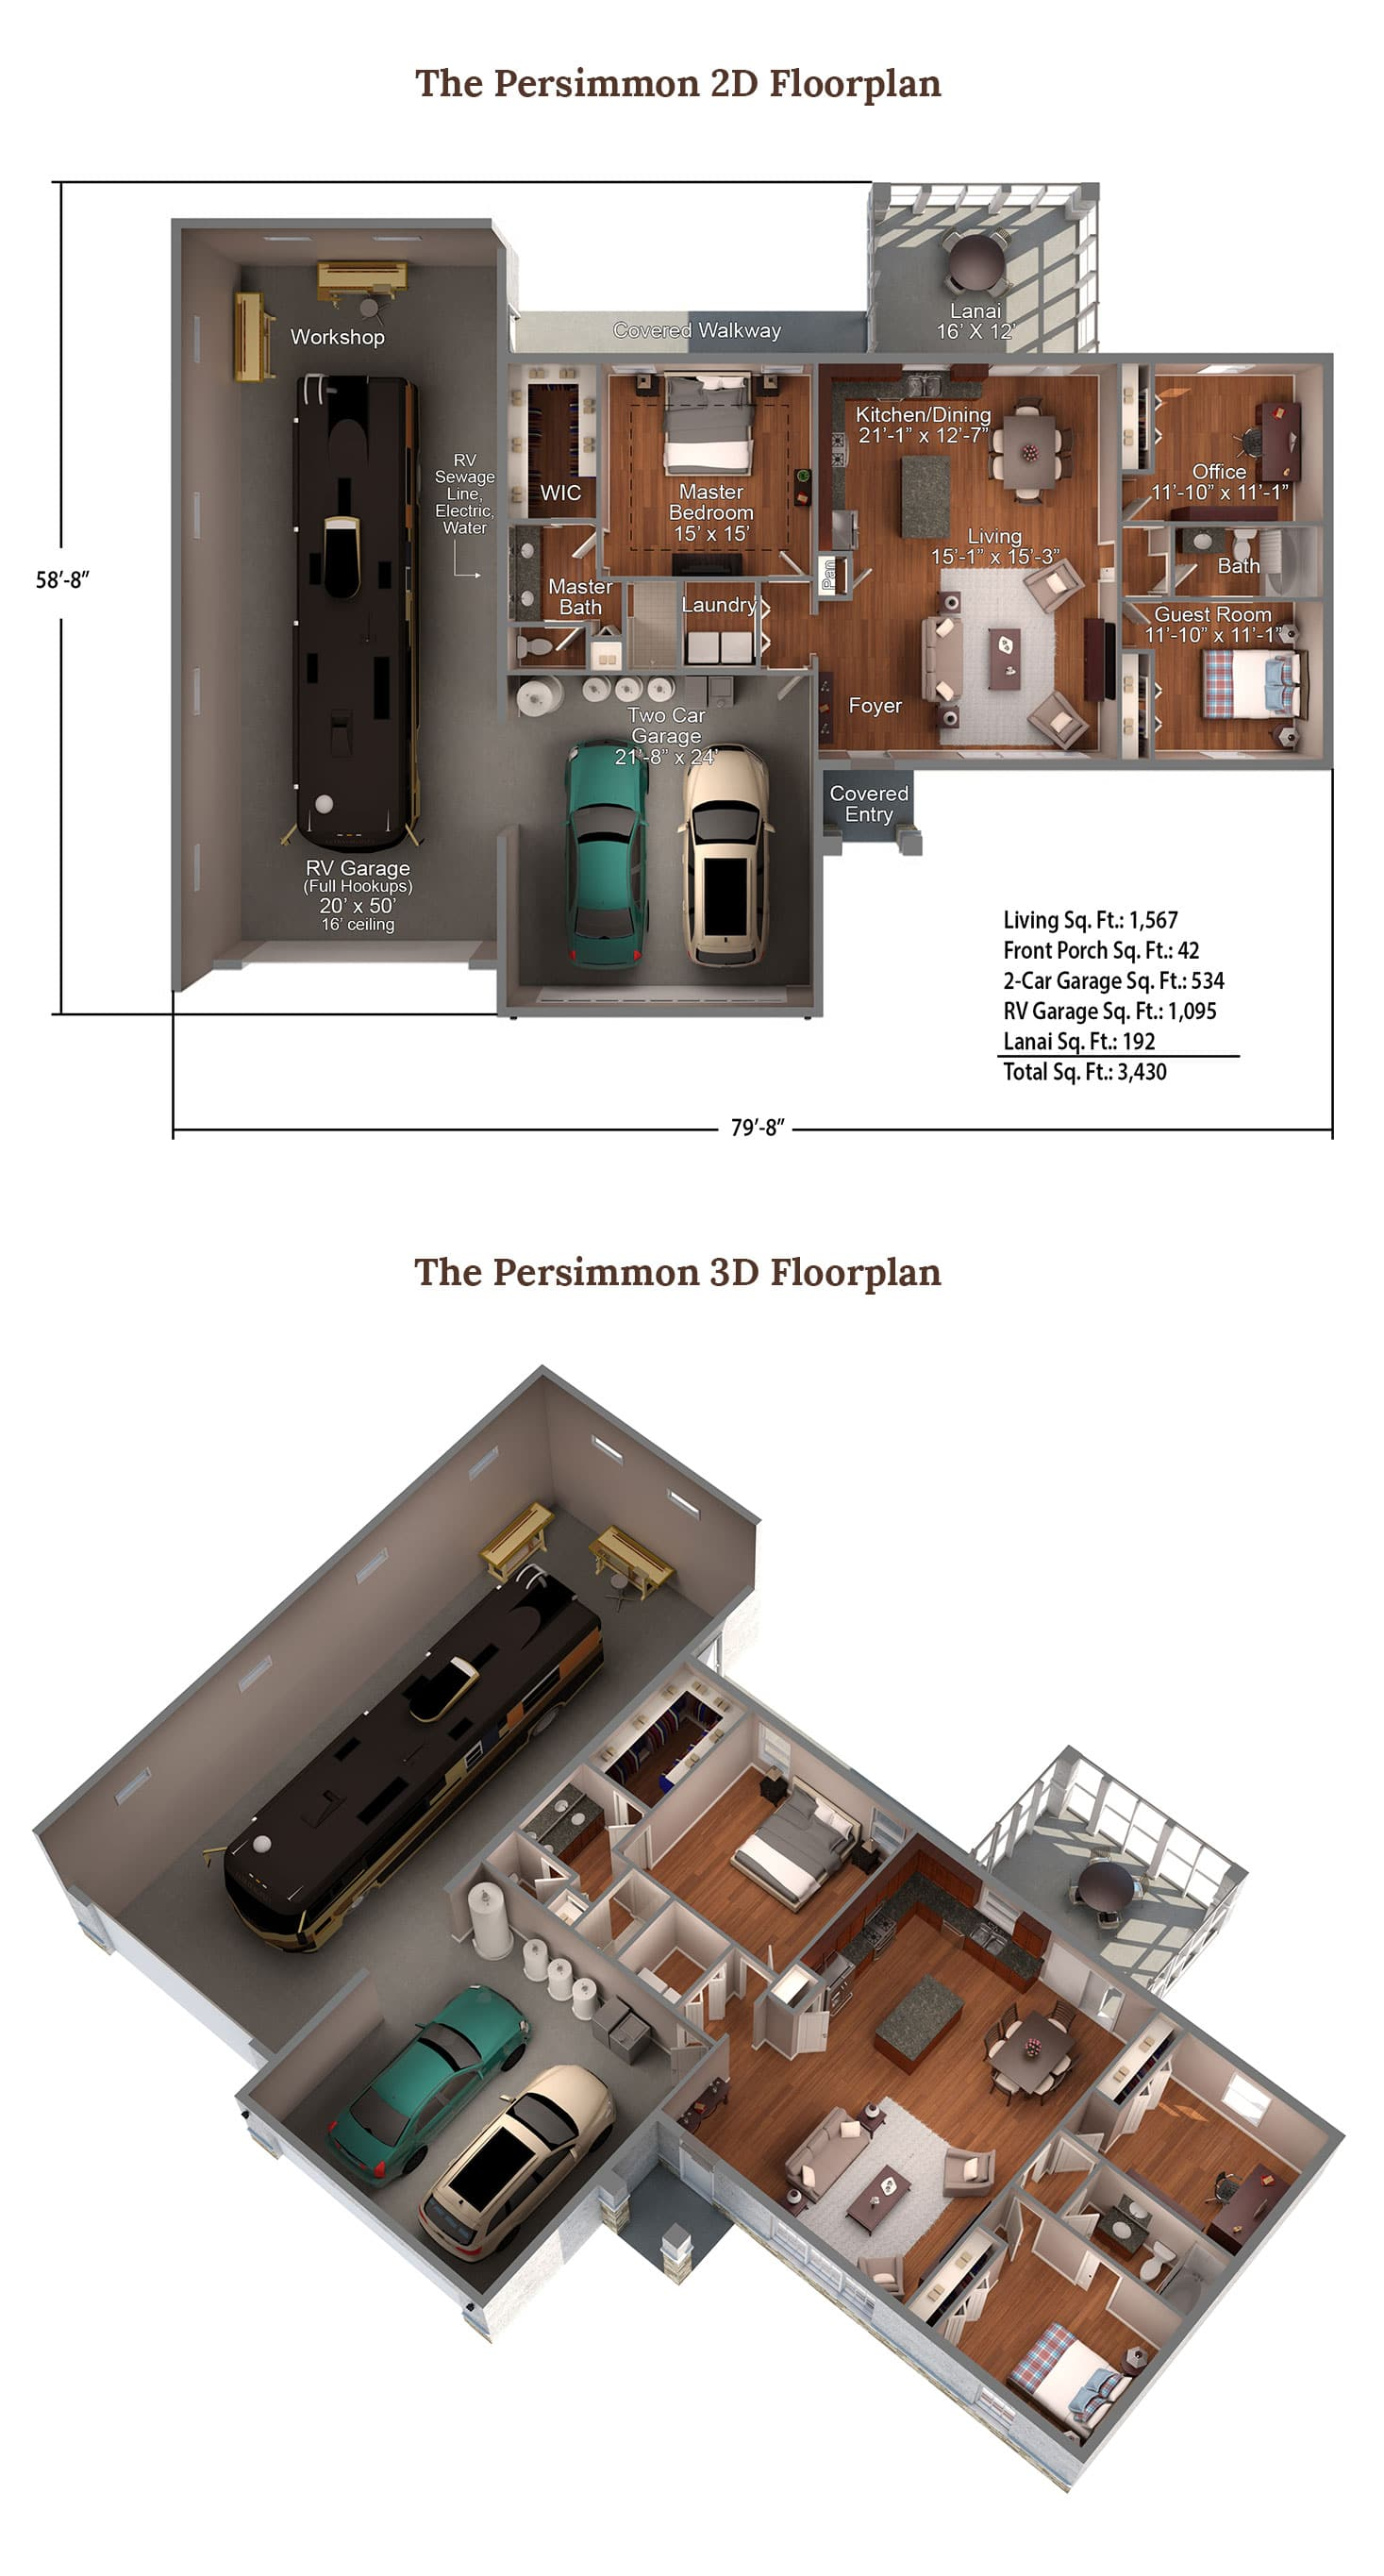 The Persimmon Floorplan